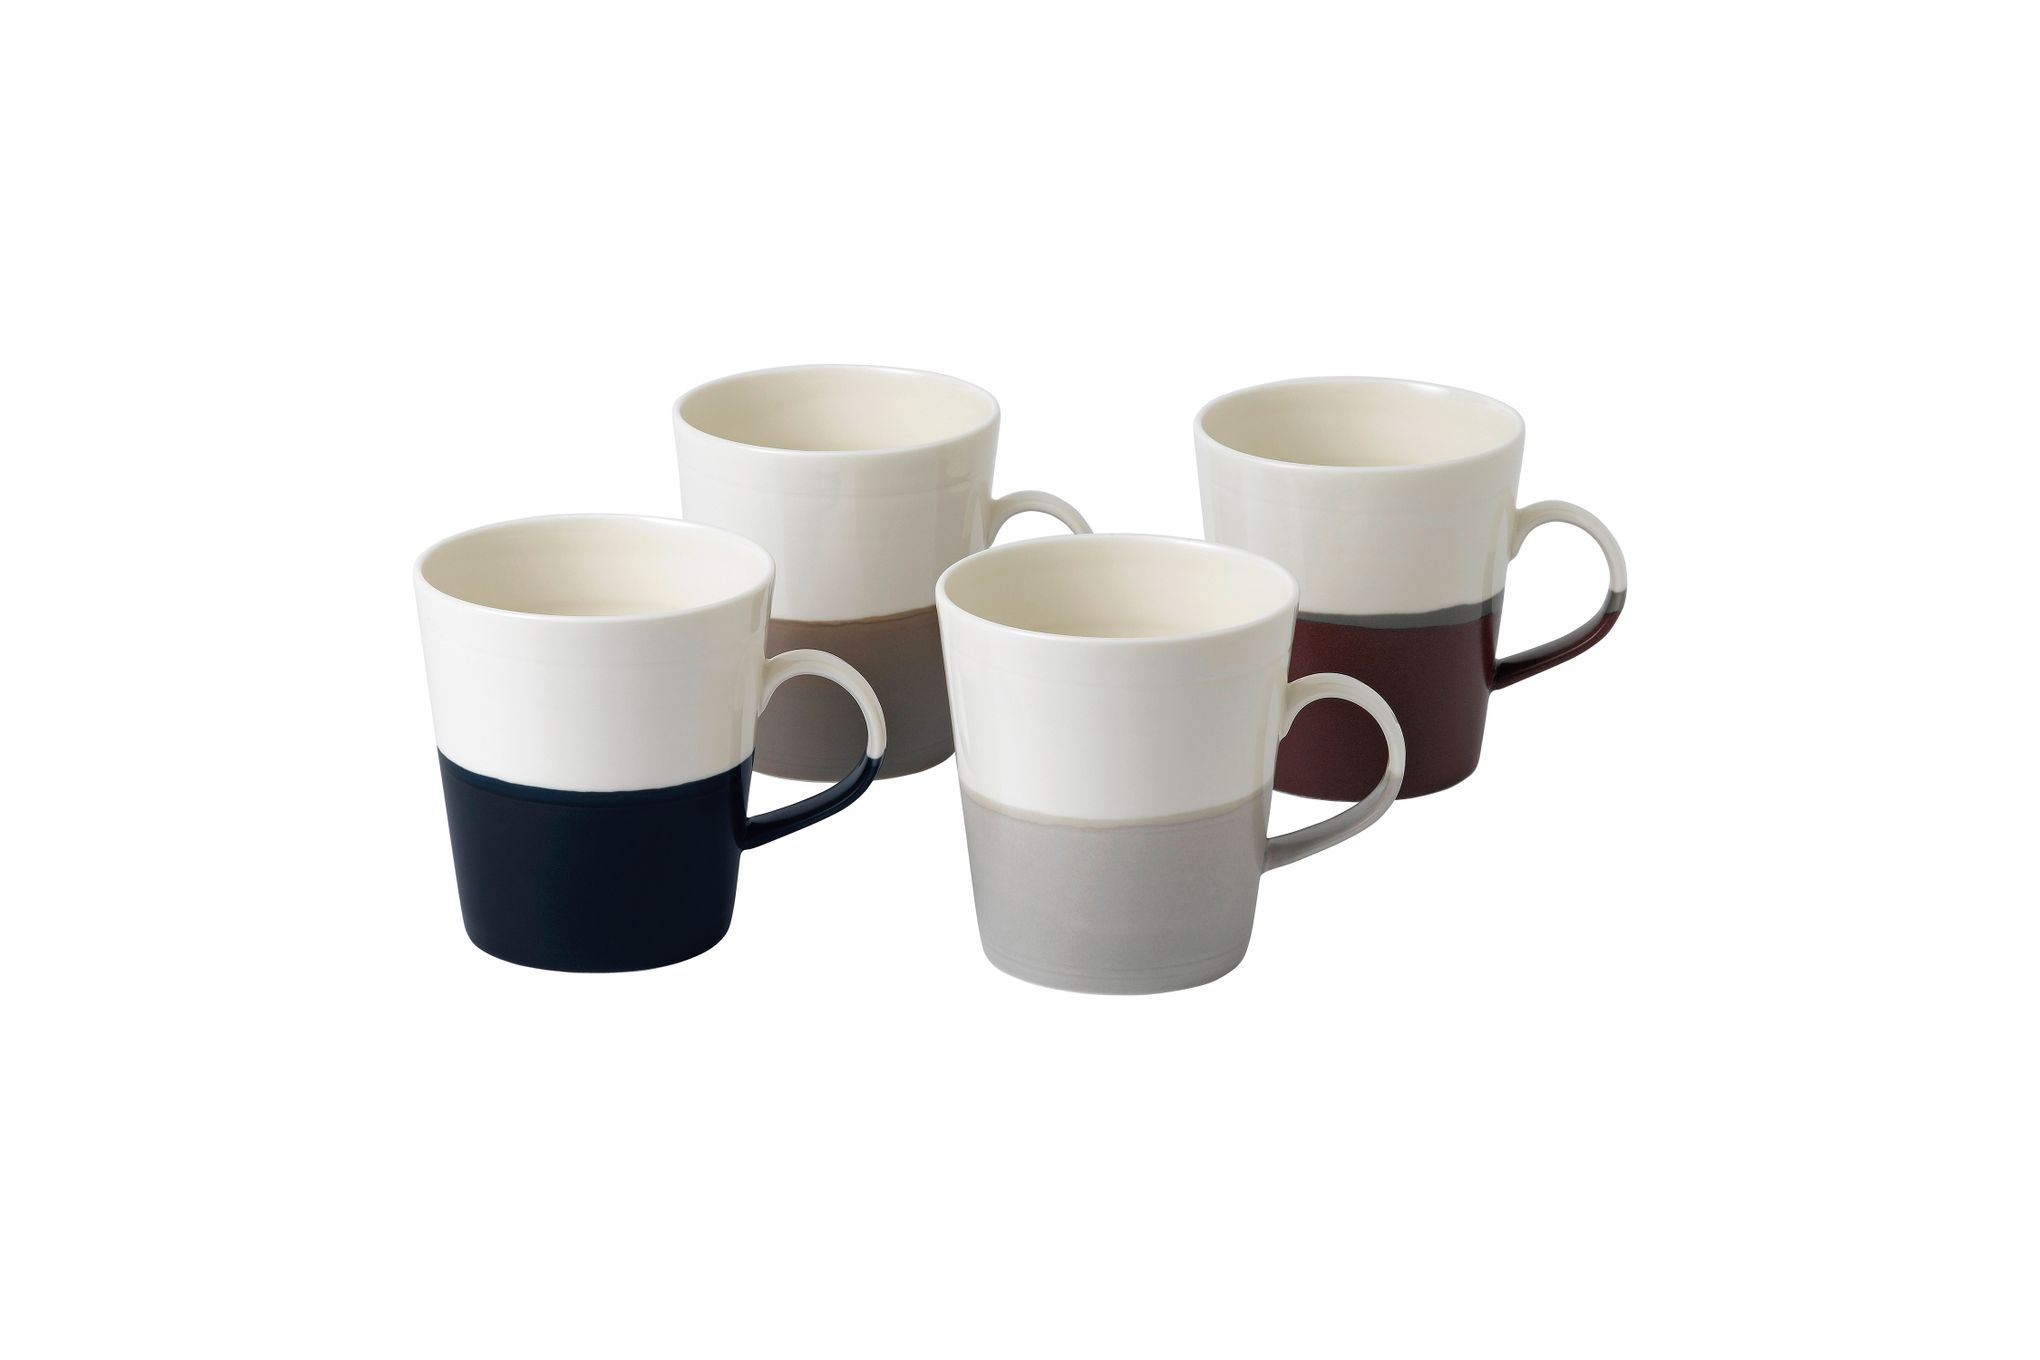 "Royal Doulton Coffee Studio Set of 4 Mugs 4 x 4 1/4"", 560ml thumb 1"